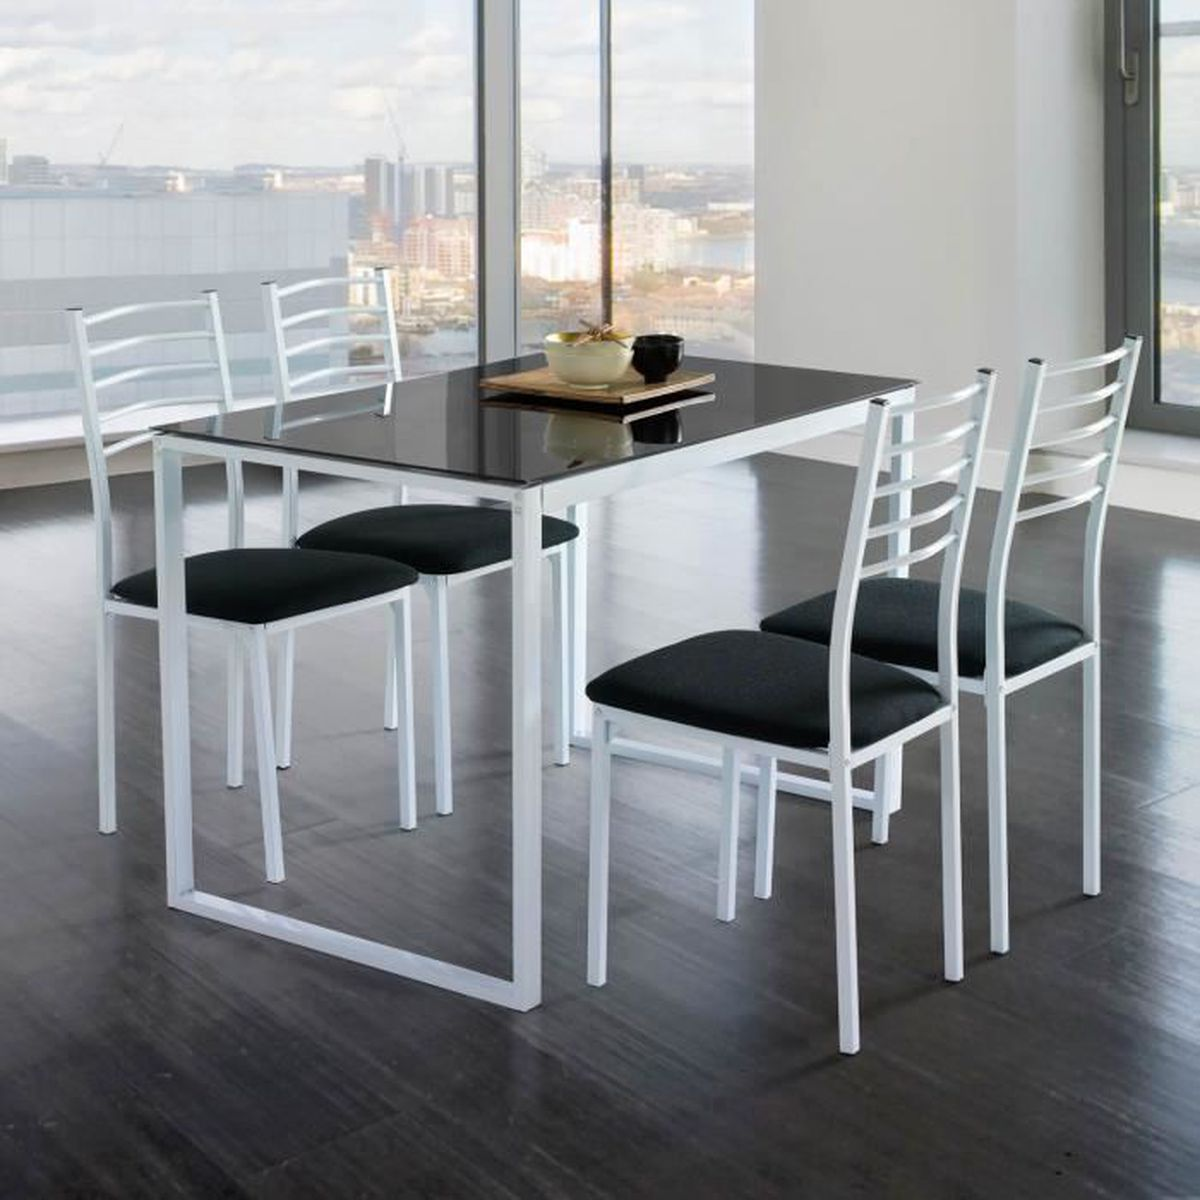 Ensemble de noa table de cuisine verre 4 chaises noir for Table et chaise de cuisine but